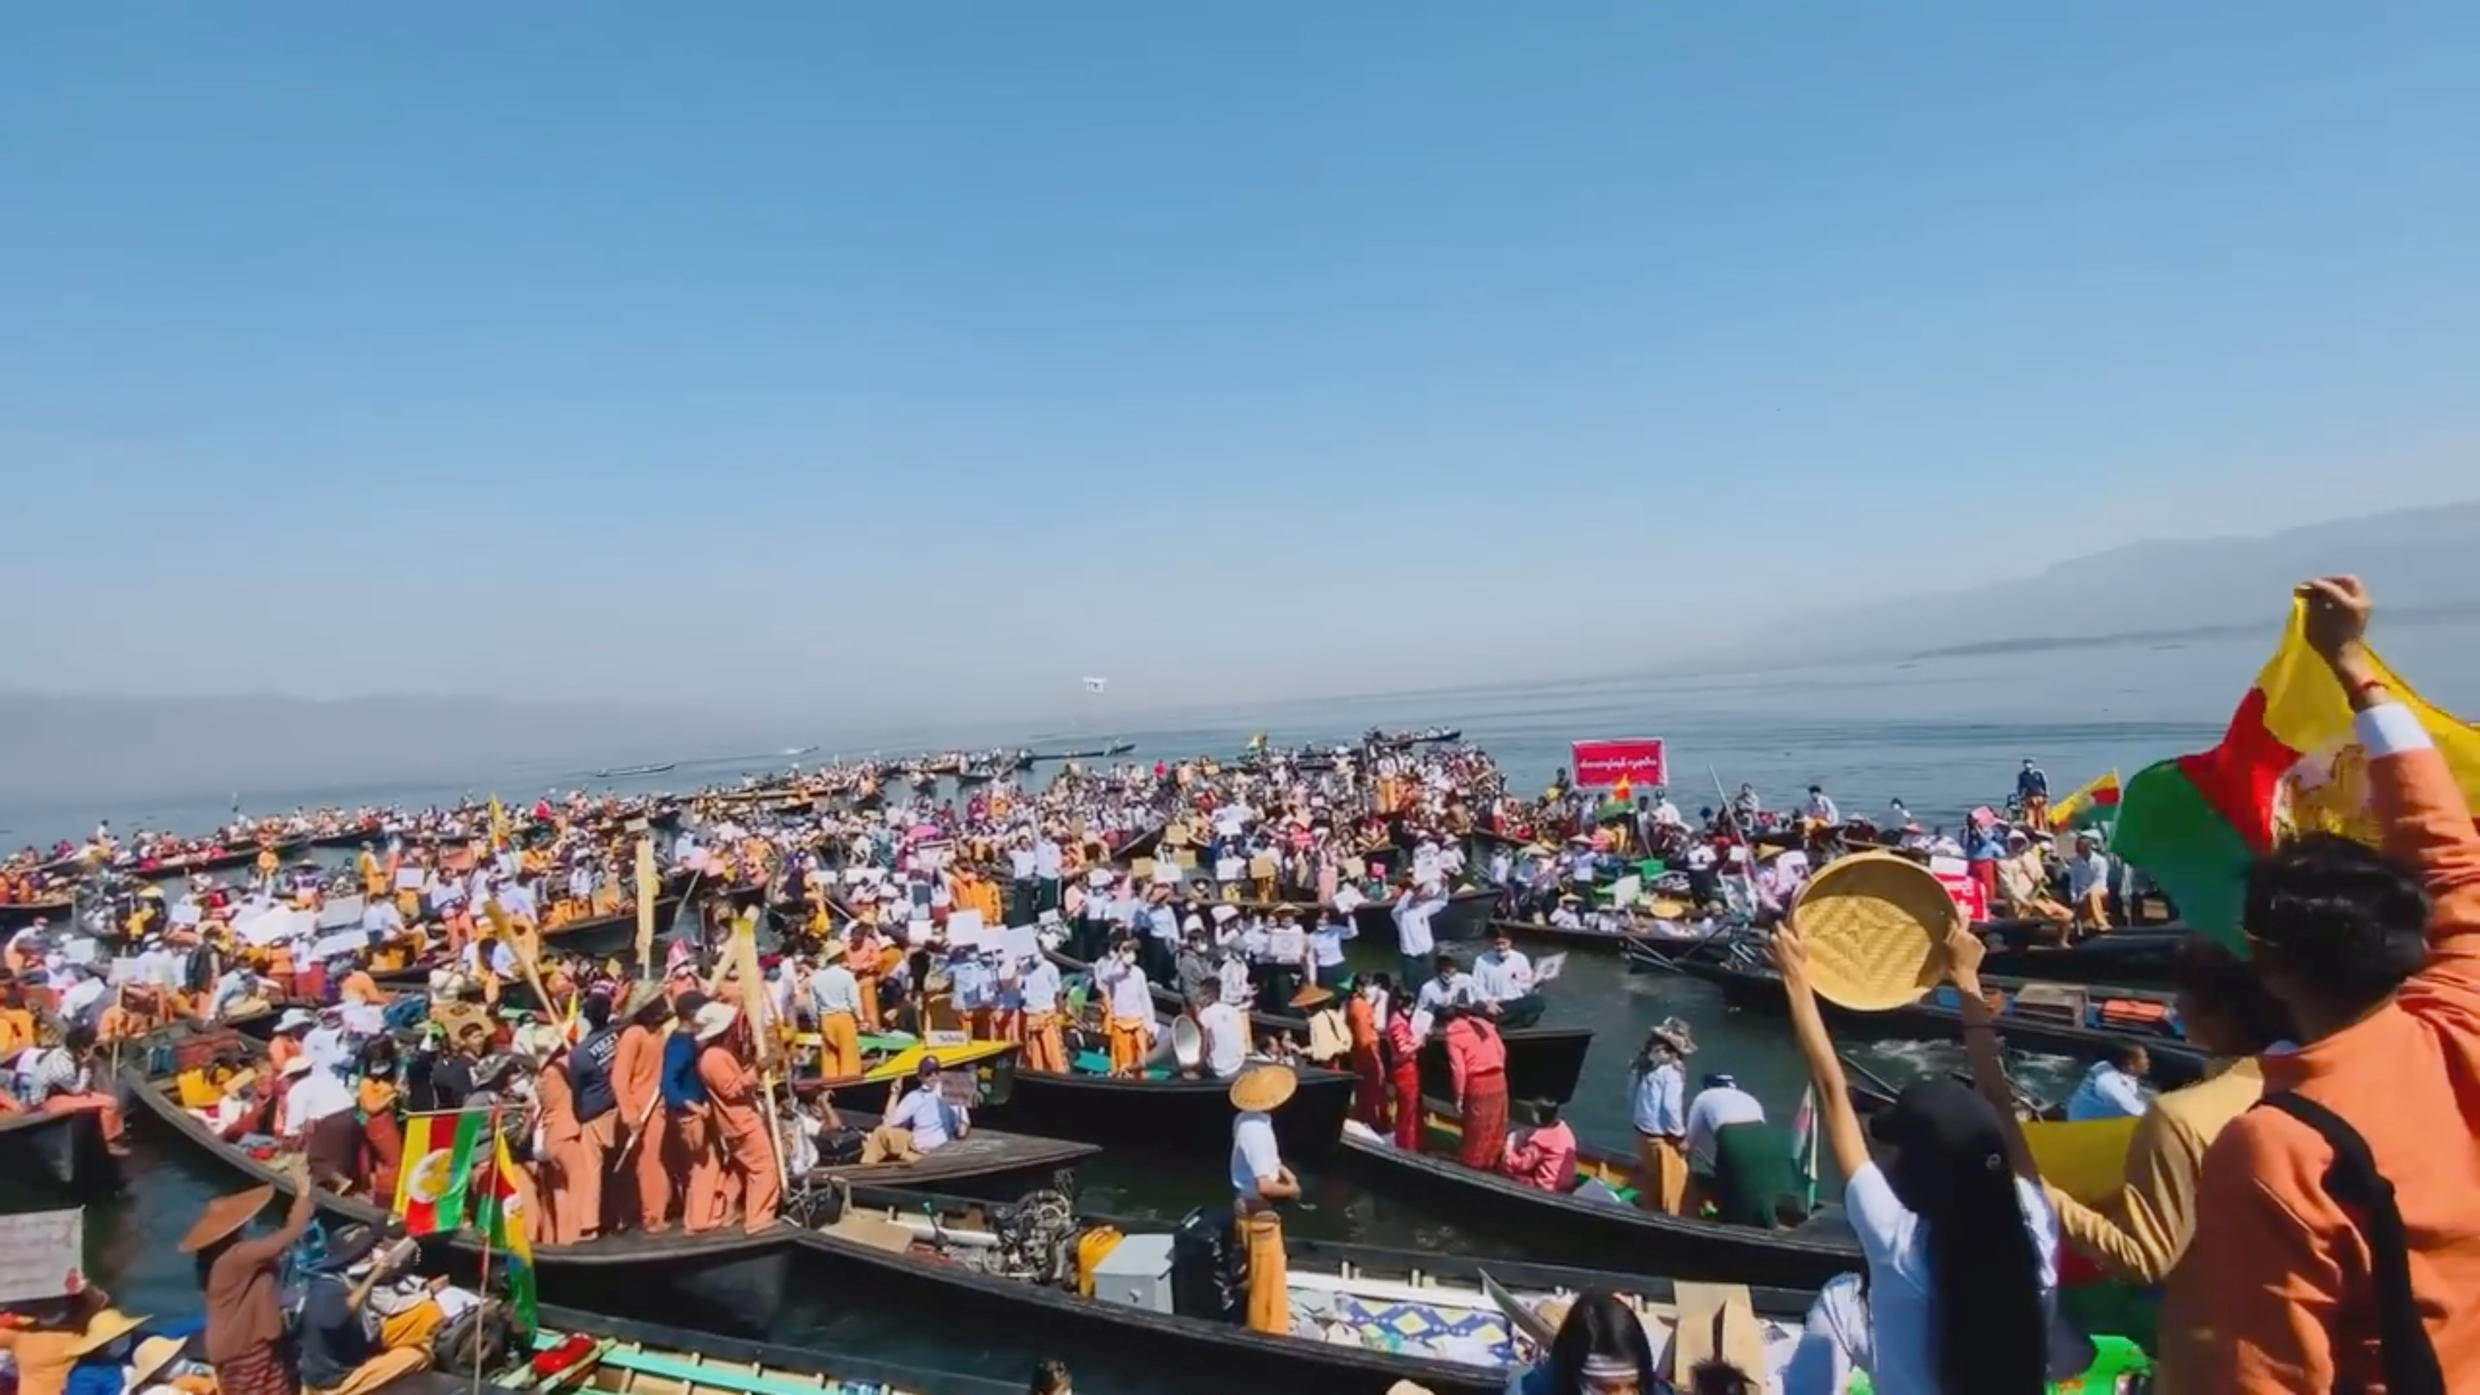 Pro-democracy protests gather on boats at a rally at Inle Lake, Myanmar February 11, 2021 in this still video image obtained by REUTERS.